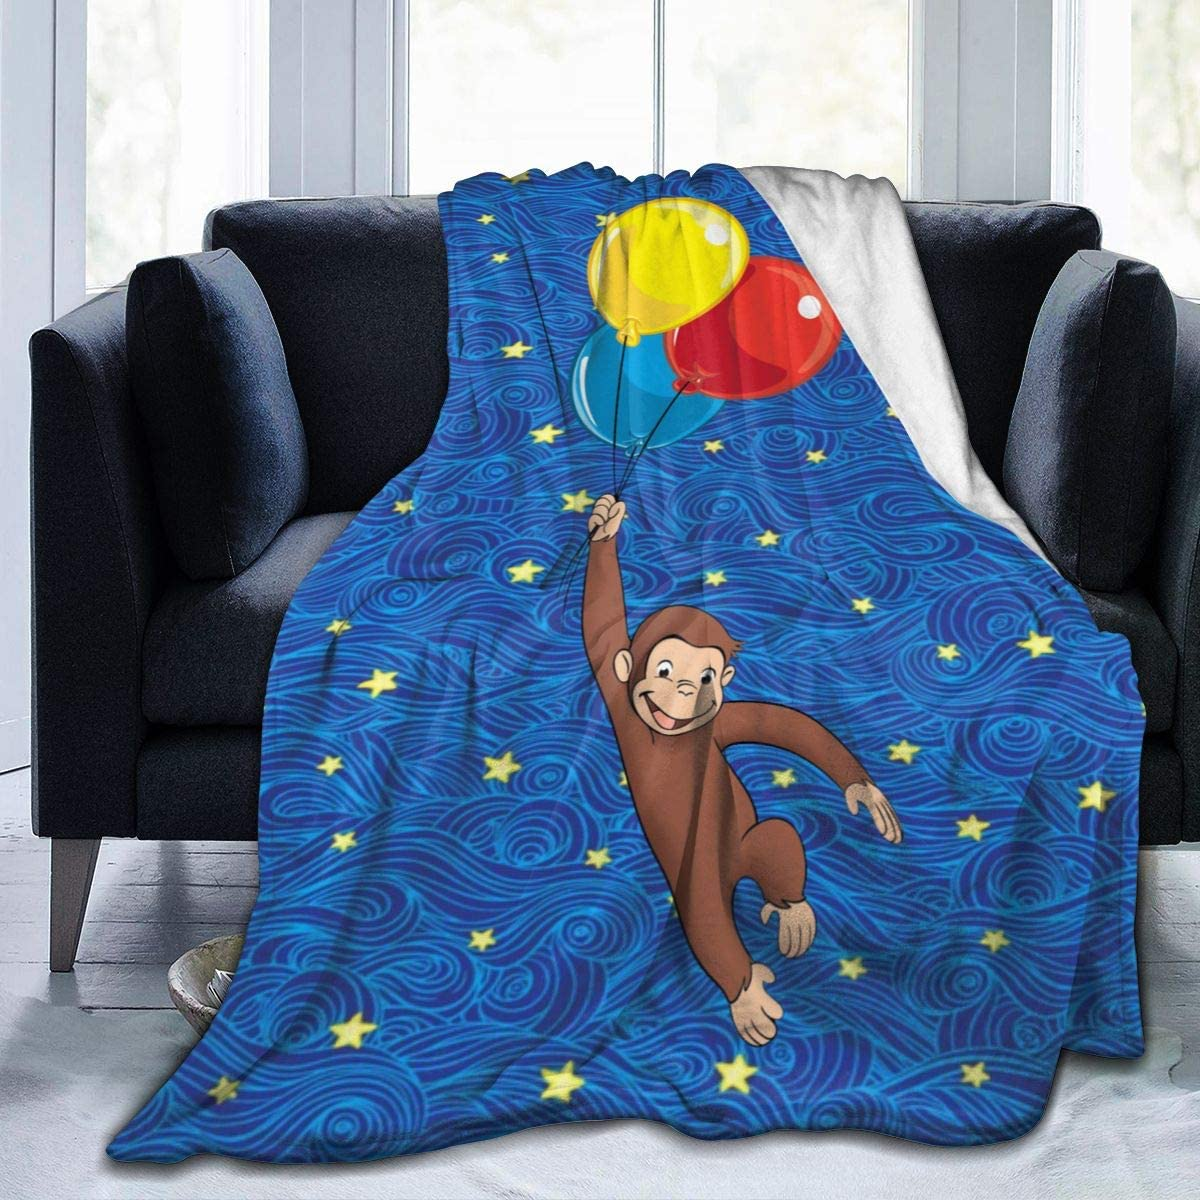 EVA GIBBONS Curious Monkey Throw Blanket Ultra Soft Bedspread Microfiber Fleece Blanket Durable Home Decor Perfect for Couch Sofa Beds (Curious Monkey, Medium 60x50 in for Teens)